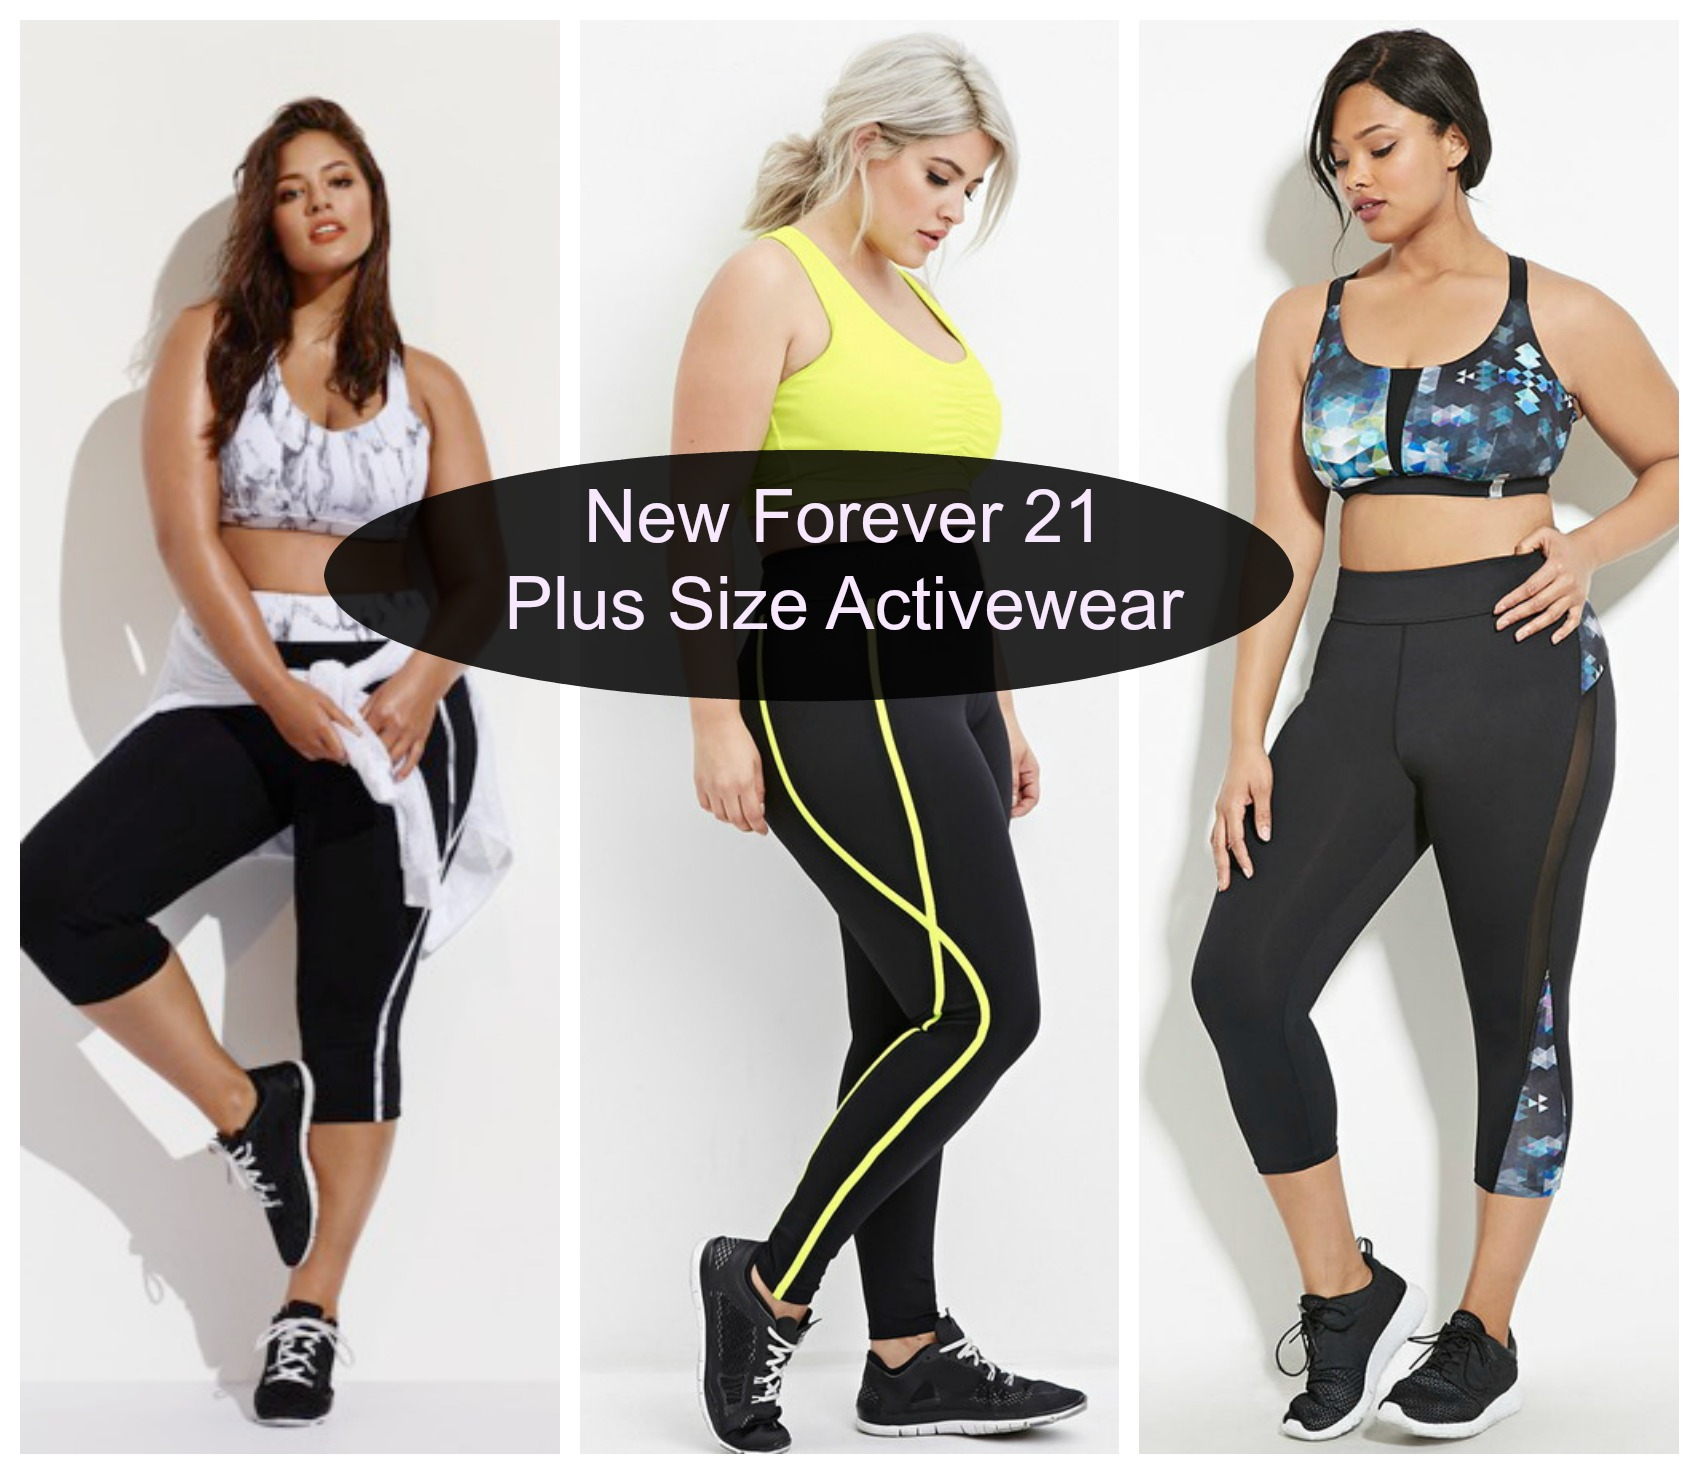 7b2335d34ccf4 Forever 21 Launches New Plus Size Activewear | Stylish Curves